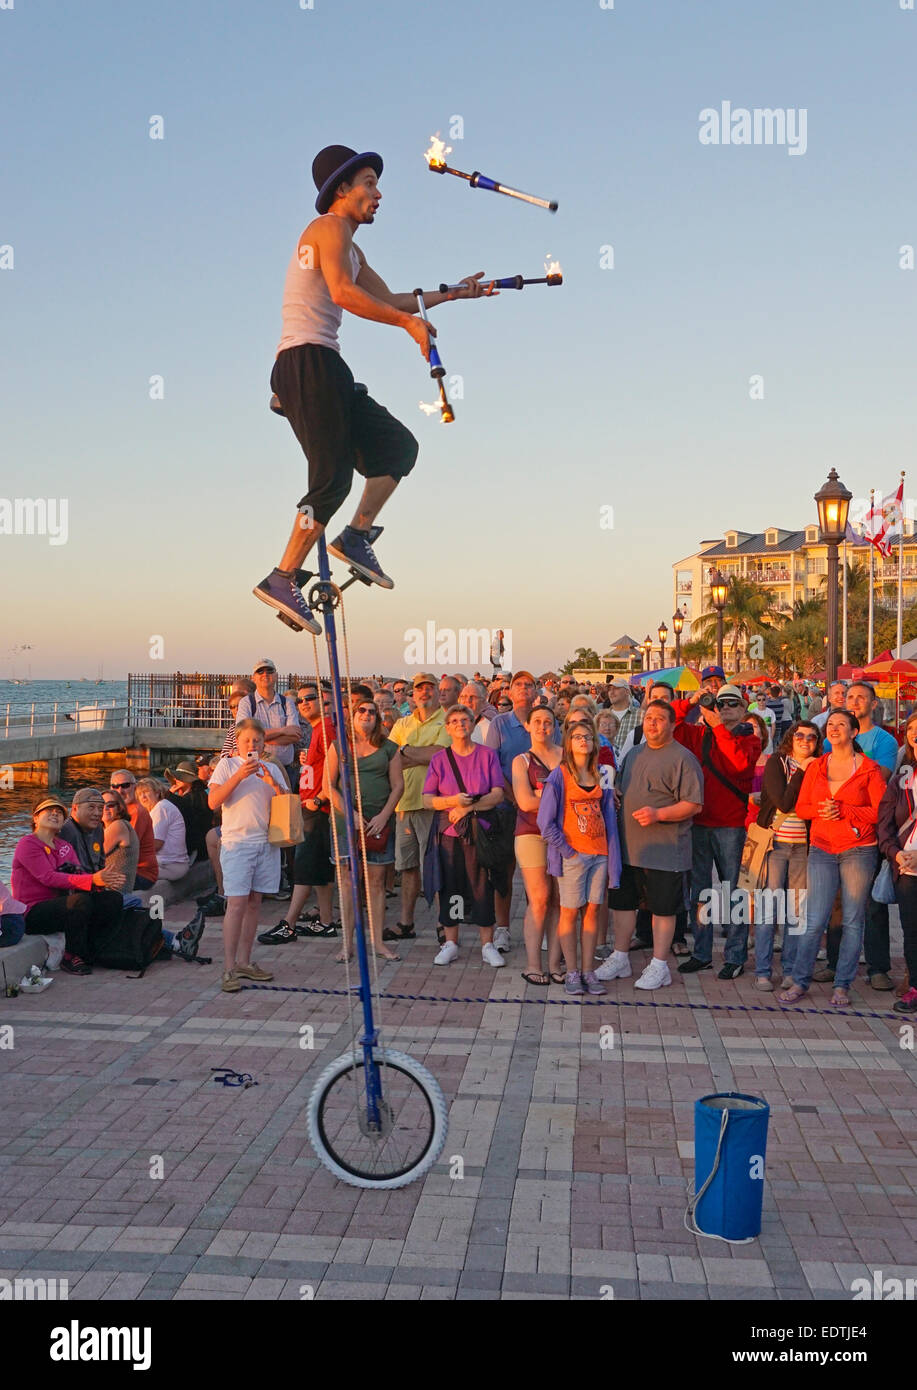 Juggler in Key West's Mallory Square entertaining tourists at sunset. - Stock Image